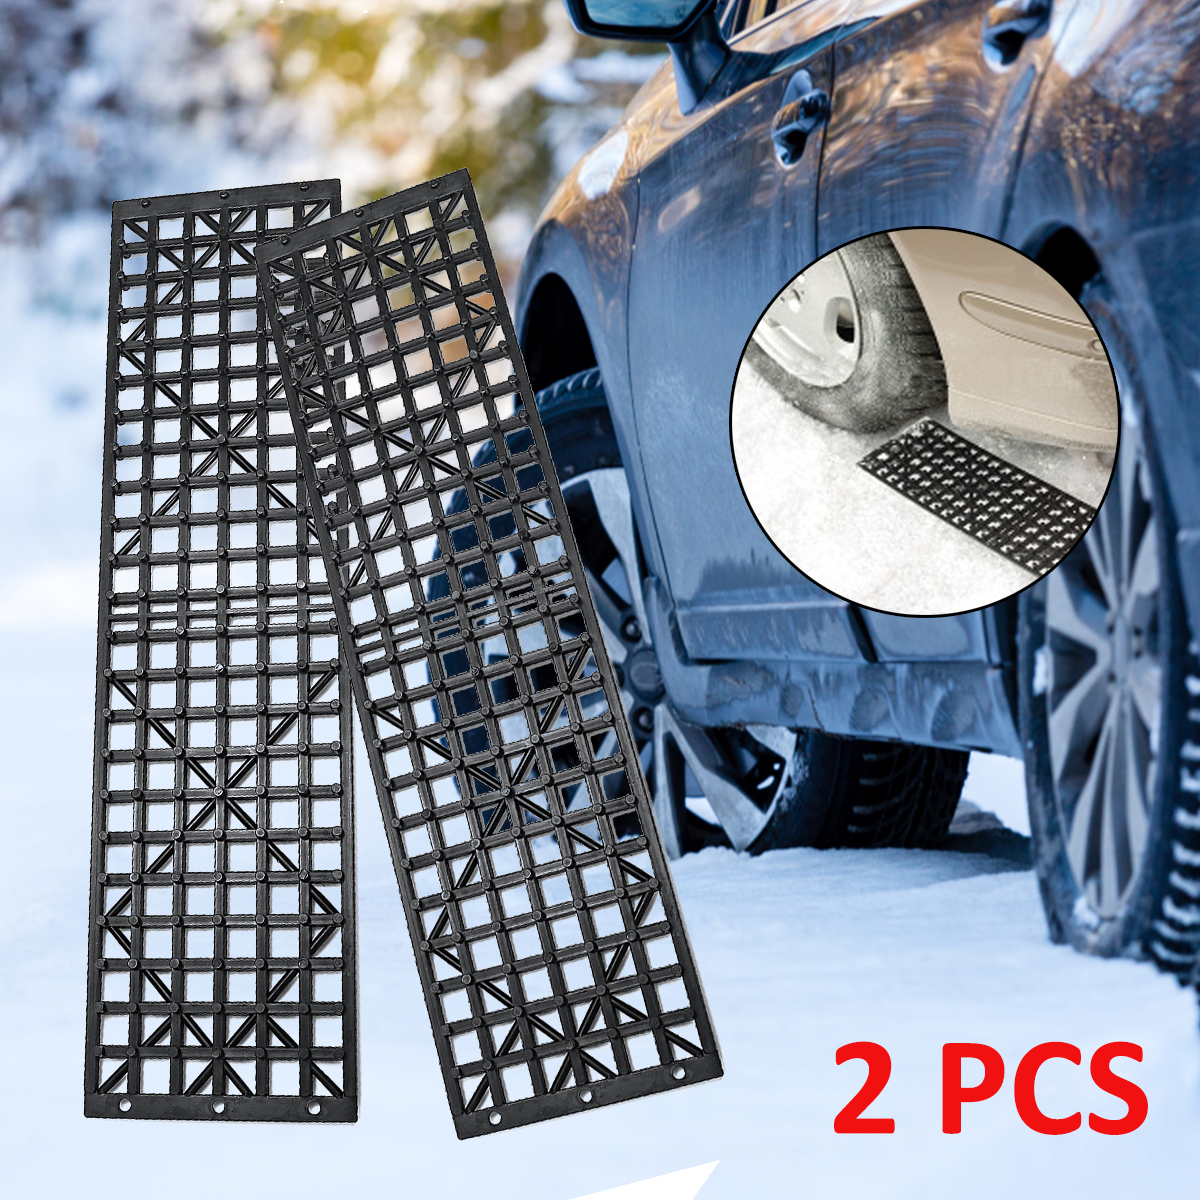 2Pcs Car Road Trouble Clearer Auto Vehicle Truck Winter Snow Chains Mud Tires Recovery Traction Mat Wheel Chain Non-slip Tracks(China)